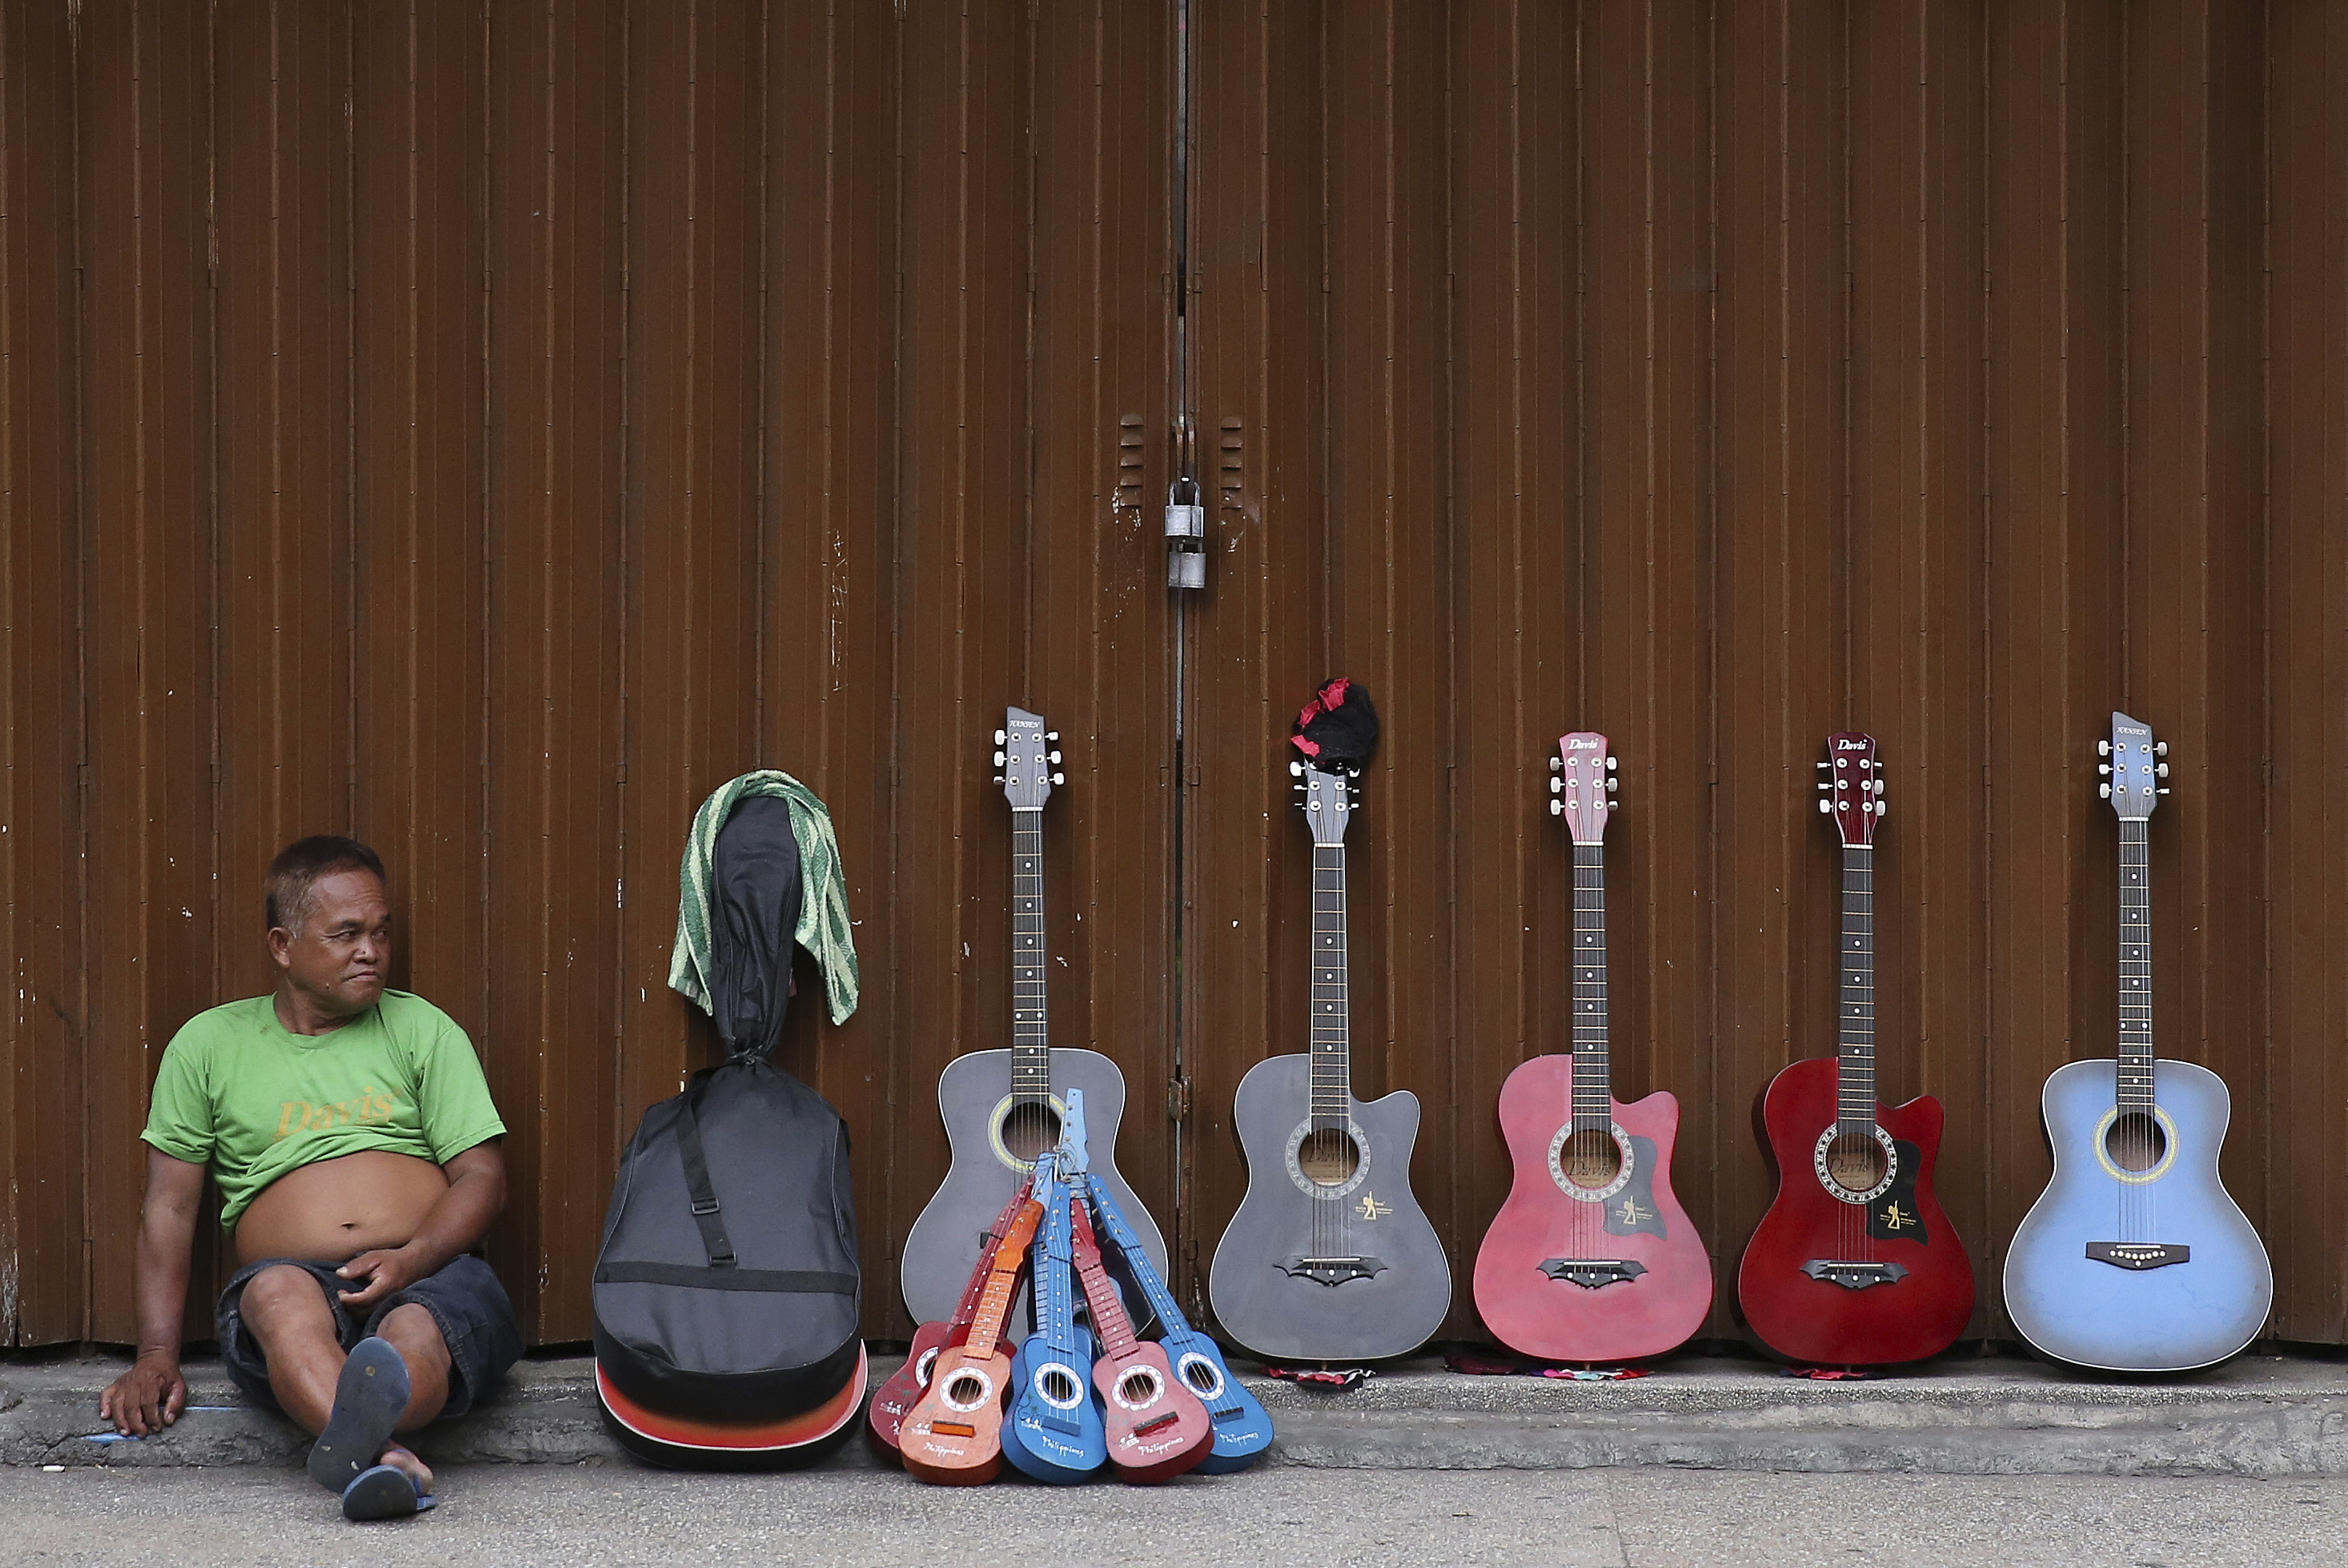 A guitar vendor Michael Hiyas, 57,  waits for customers along a street in Manila, Philippines on Thursday, May 18, 2017. Hiyas says his guitars are often bought by tourists and he earns about P400 (about US$8) a day. (AP Photo/Aaron Favila)